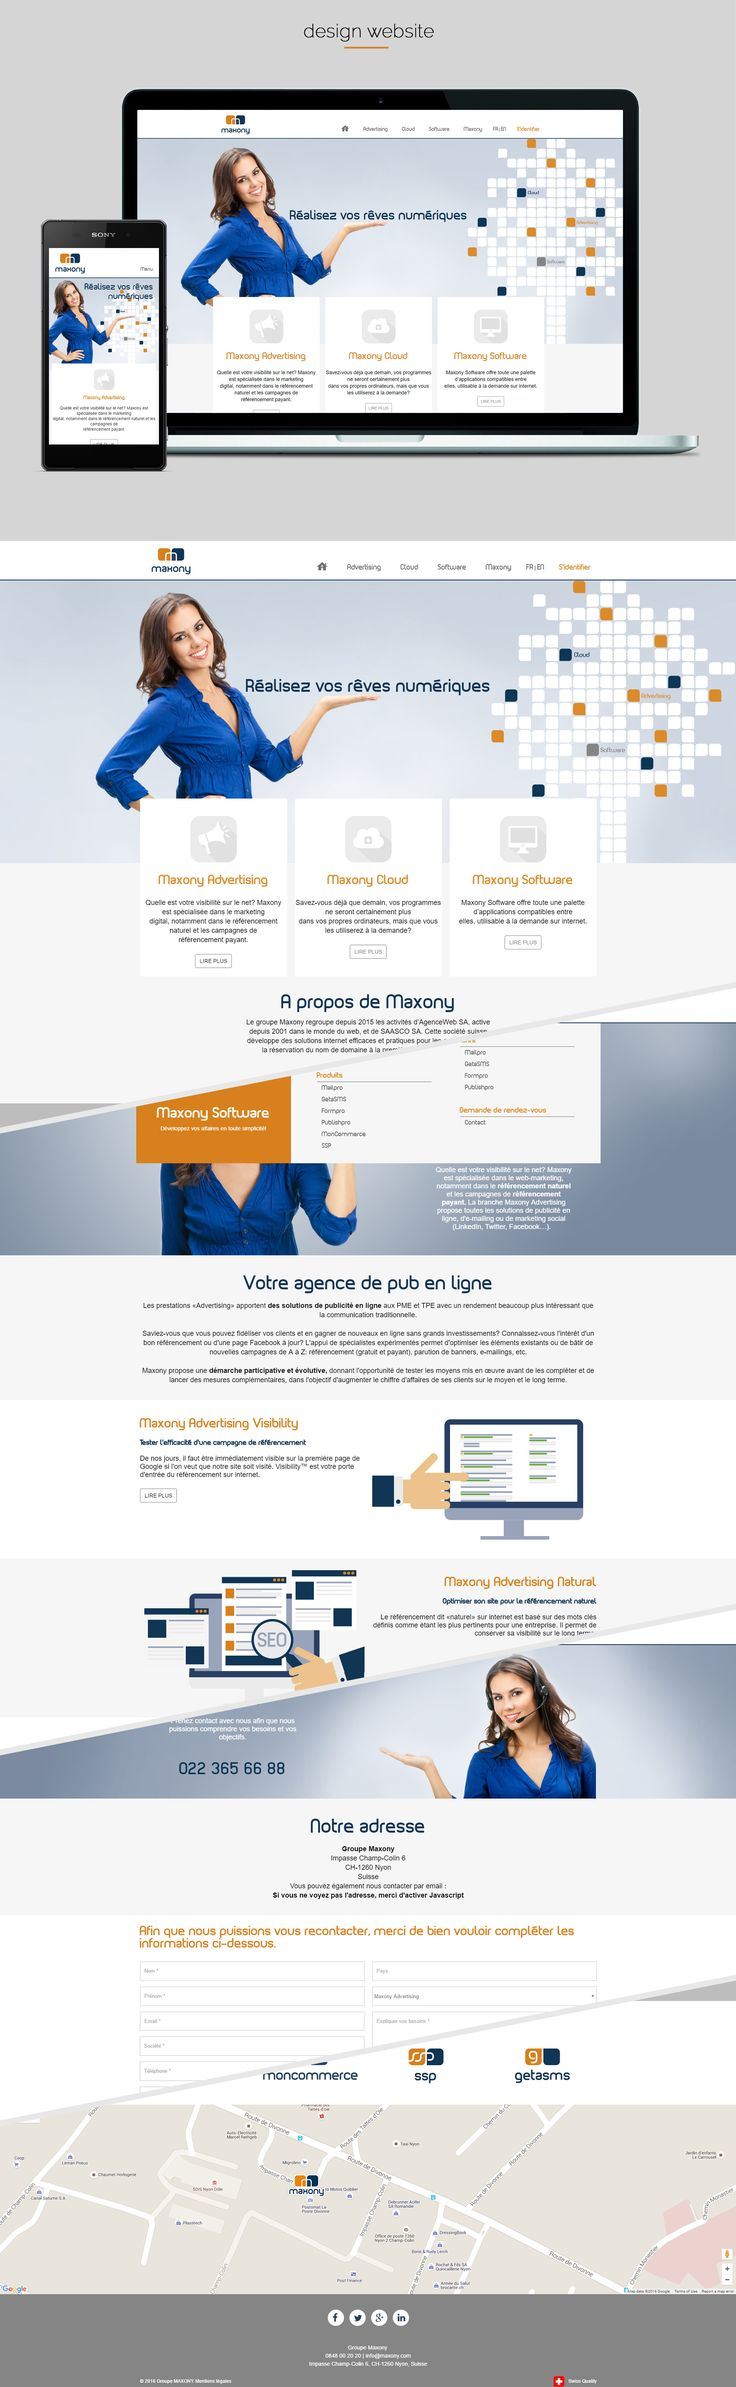 Webdesign for Maxony group made by Dexign.